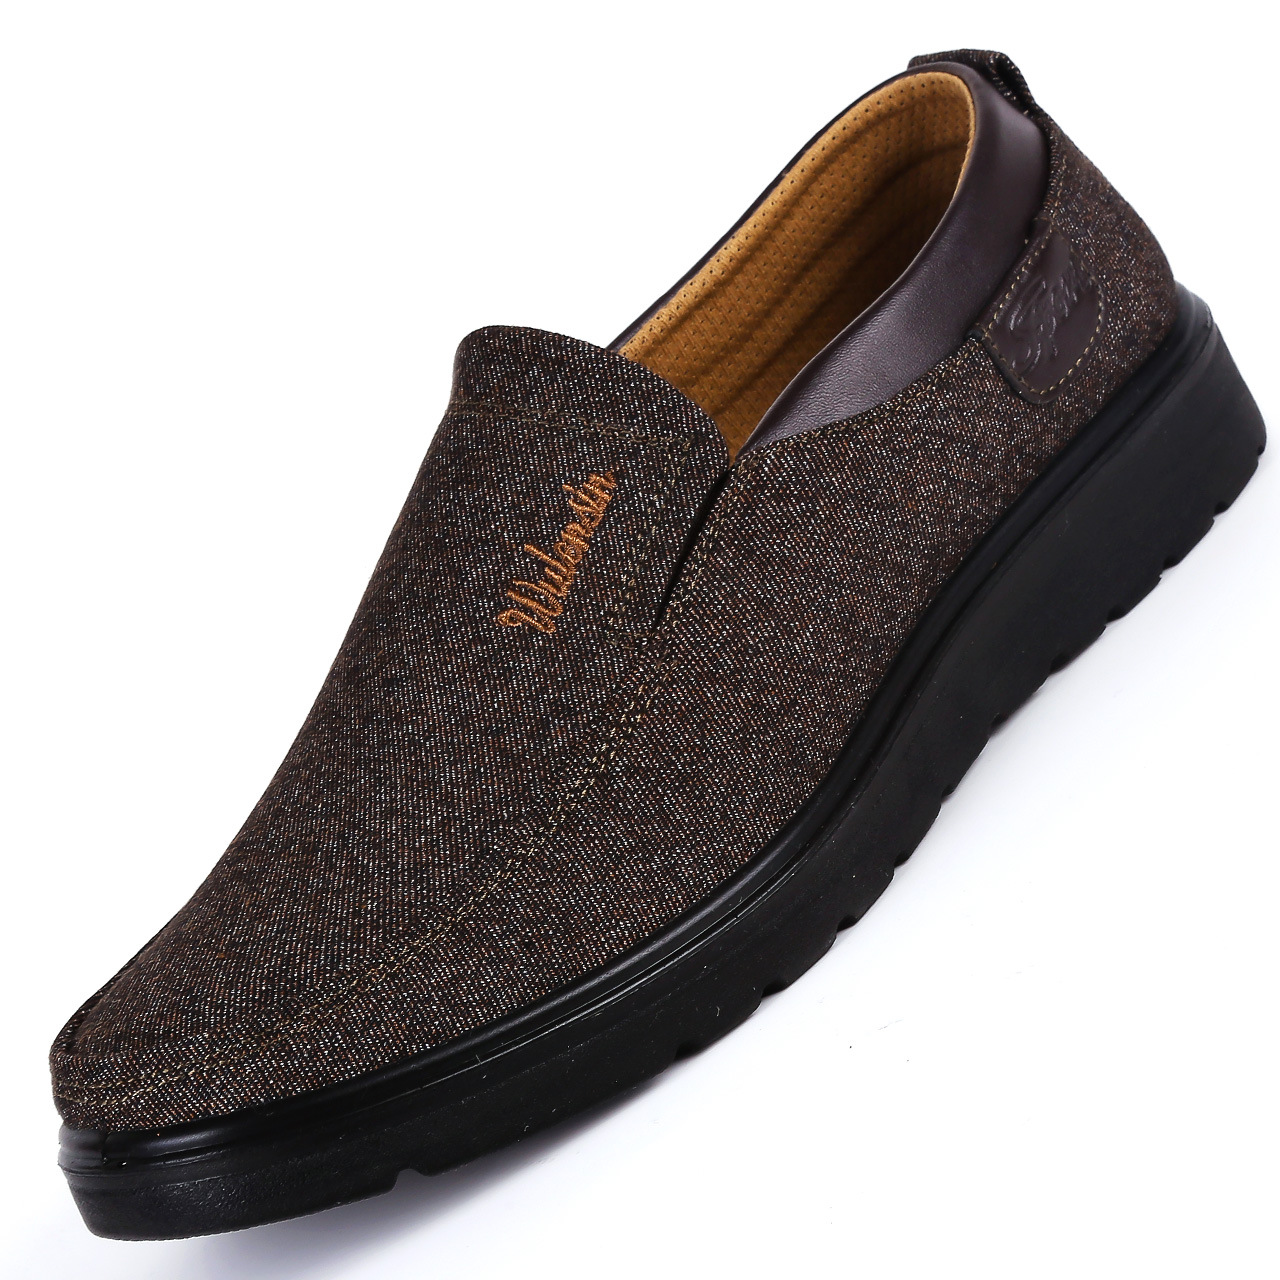 076c0718df2 Fashion Summer Shoes Men Casual Air Mesh Shoes Large Sizes 38-48  Lightweight Breathable Slip-On Flats Chaussure Homme